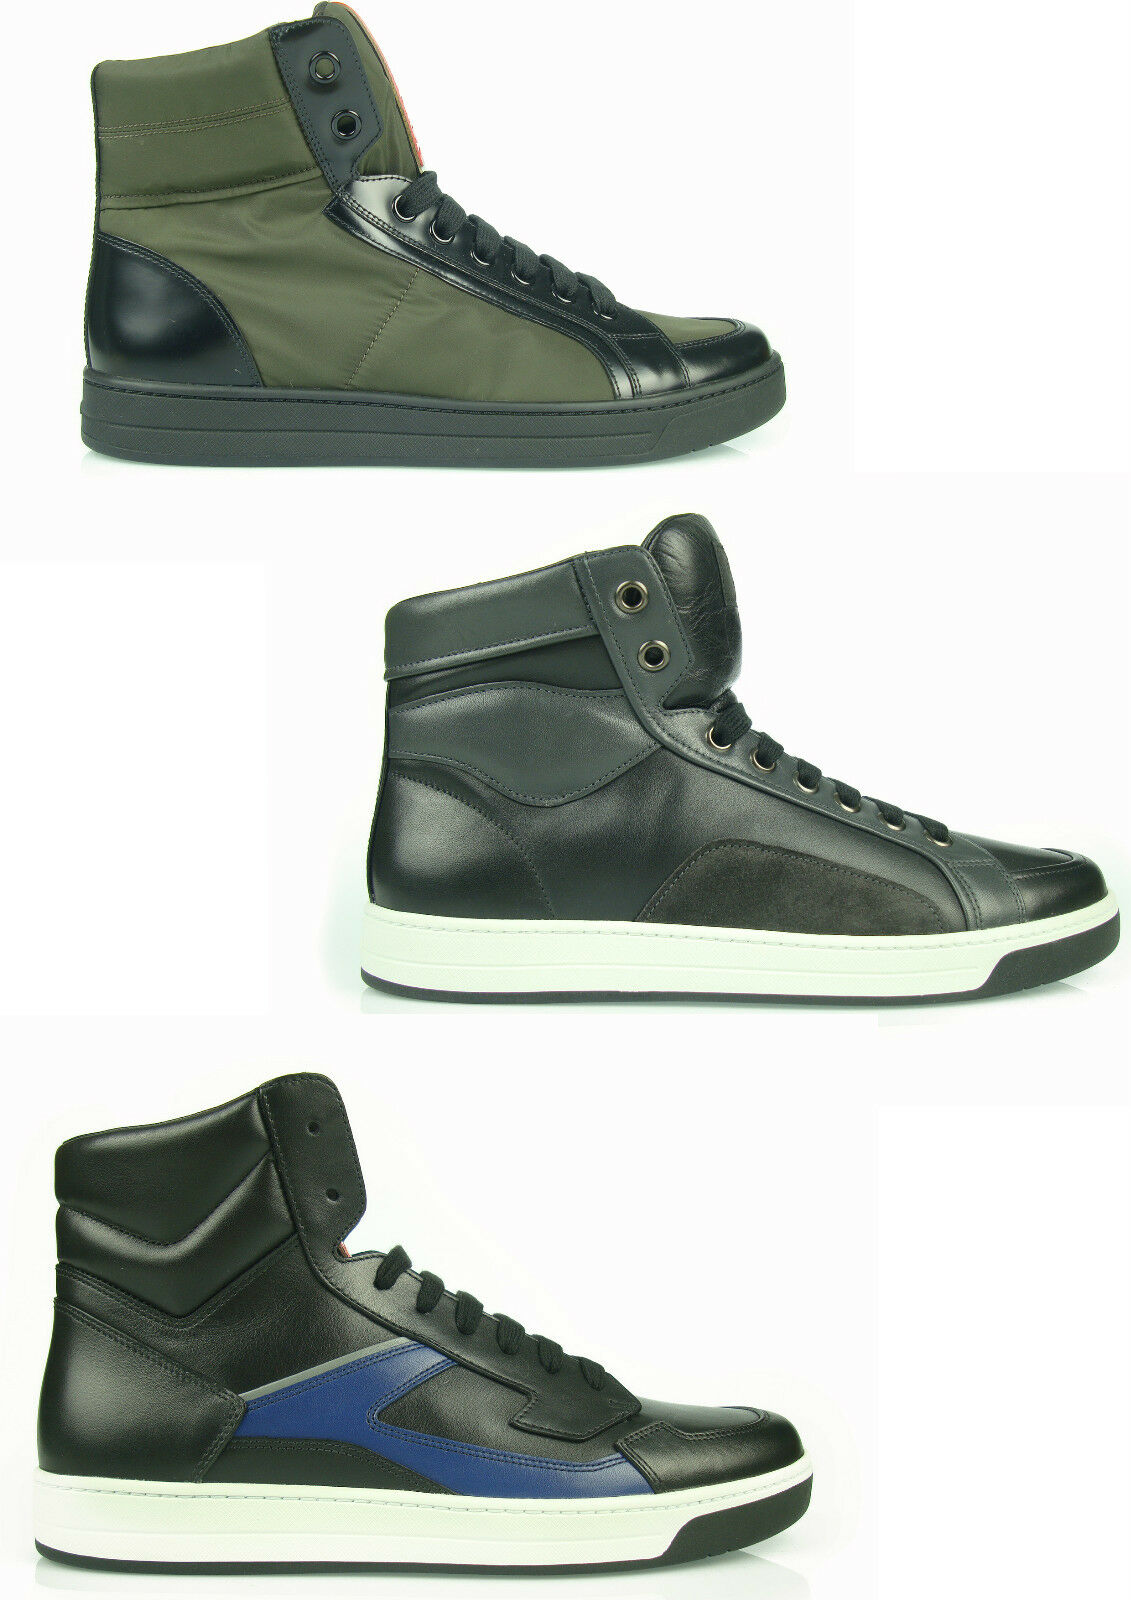 550 MB2de PRADA SNEAKERS MAN HI TOP shoes SHOES HERRENSHUHE 100% AUTENTICH